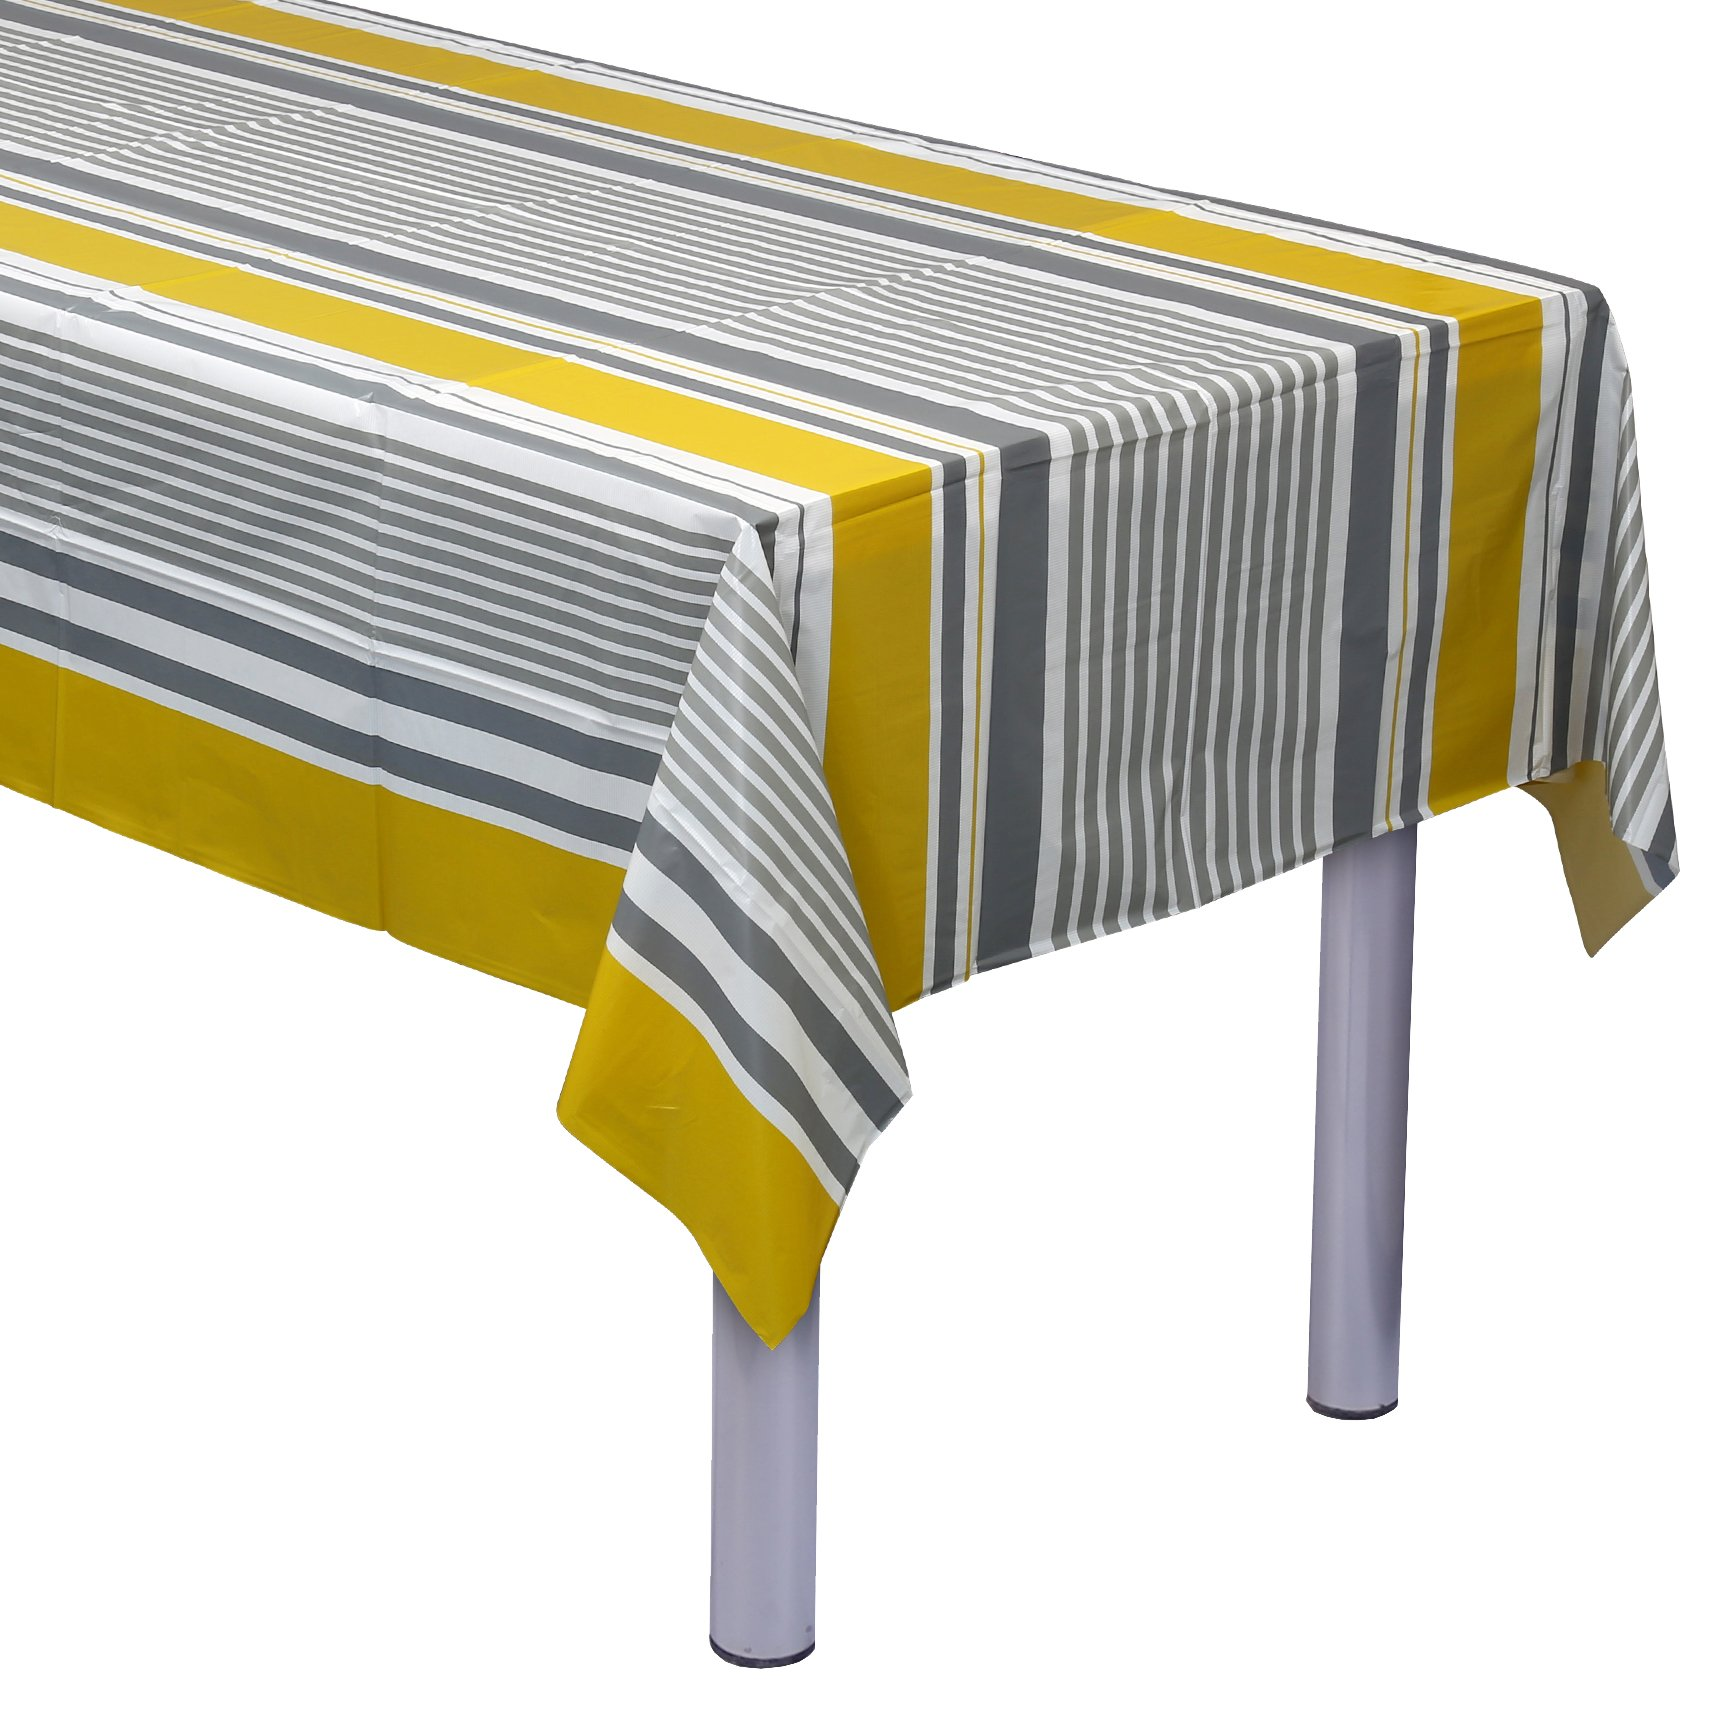 Plastish Disposable Plastic Tablecloths | Size 54 X 108 Inches | 13 Count | Mustard & Grey Striped Design | Covers an 8 Ft. Rectangle Picnic Party Table | Many Sizes Available